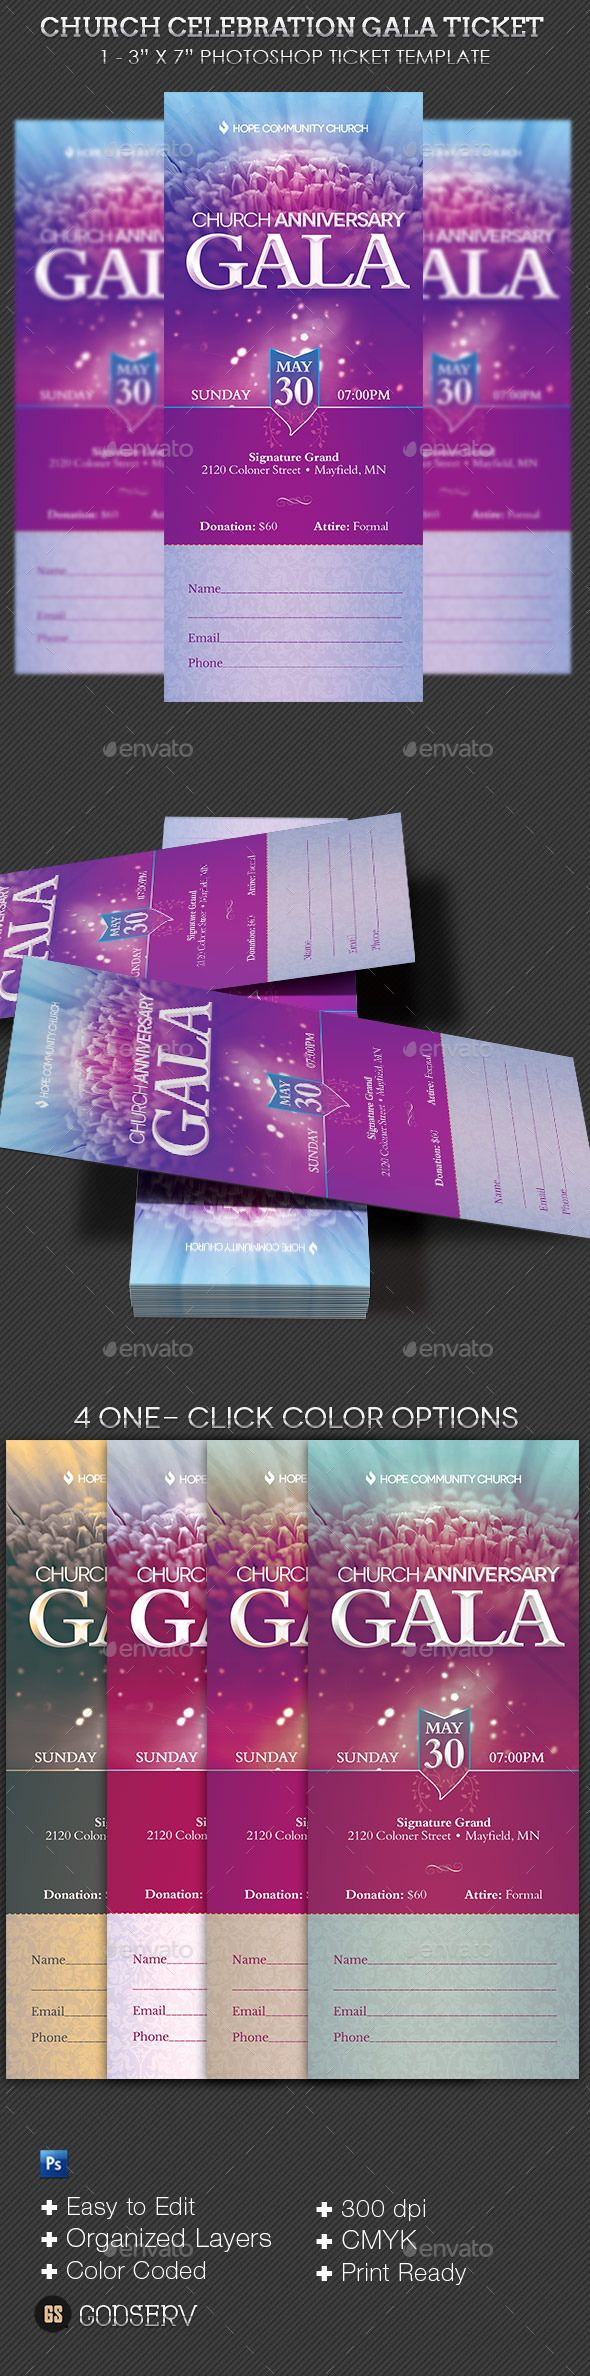 207 best ticket templates images on pinterest font logo ticket church celebration gala ticket template pronofoot35fo Choice Image